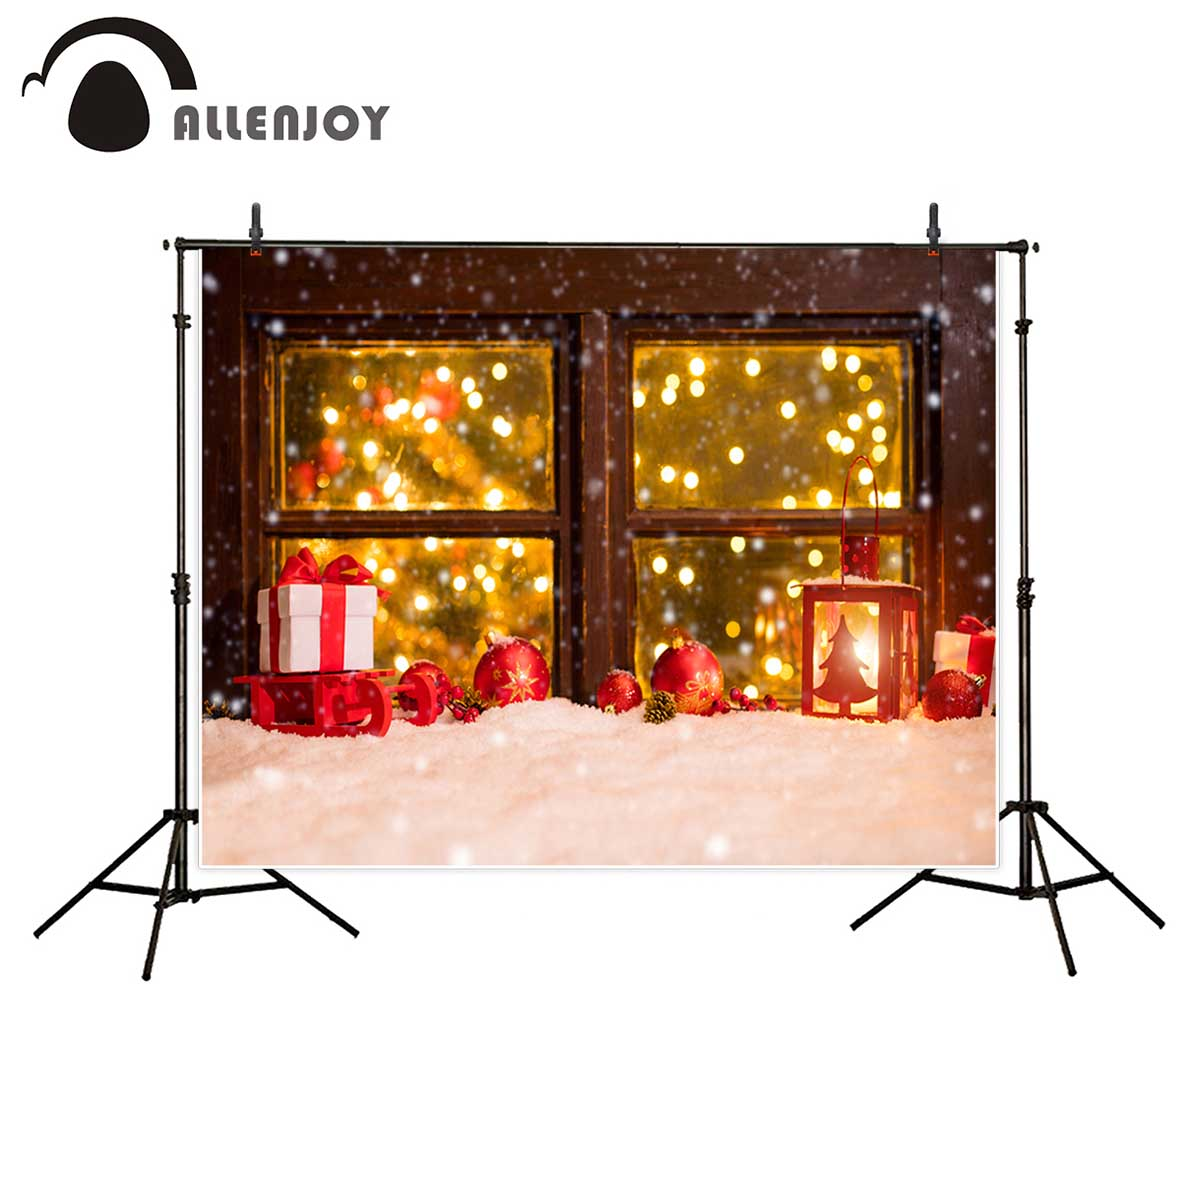 Allenjoy photography background  Christmas wood window Snow winter gifts light red balls backdrop Photo background studio